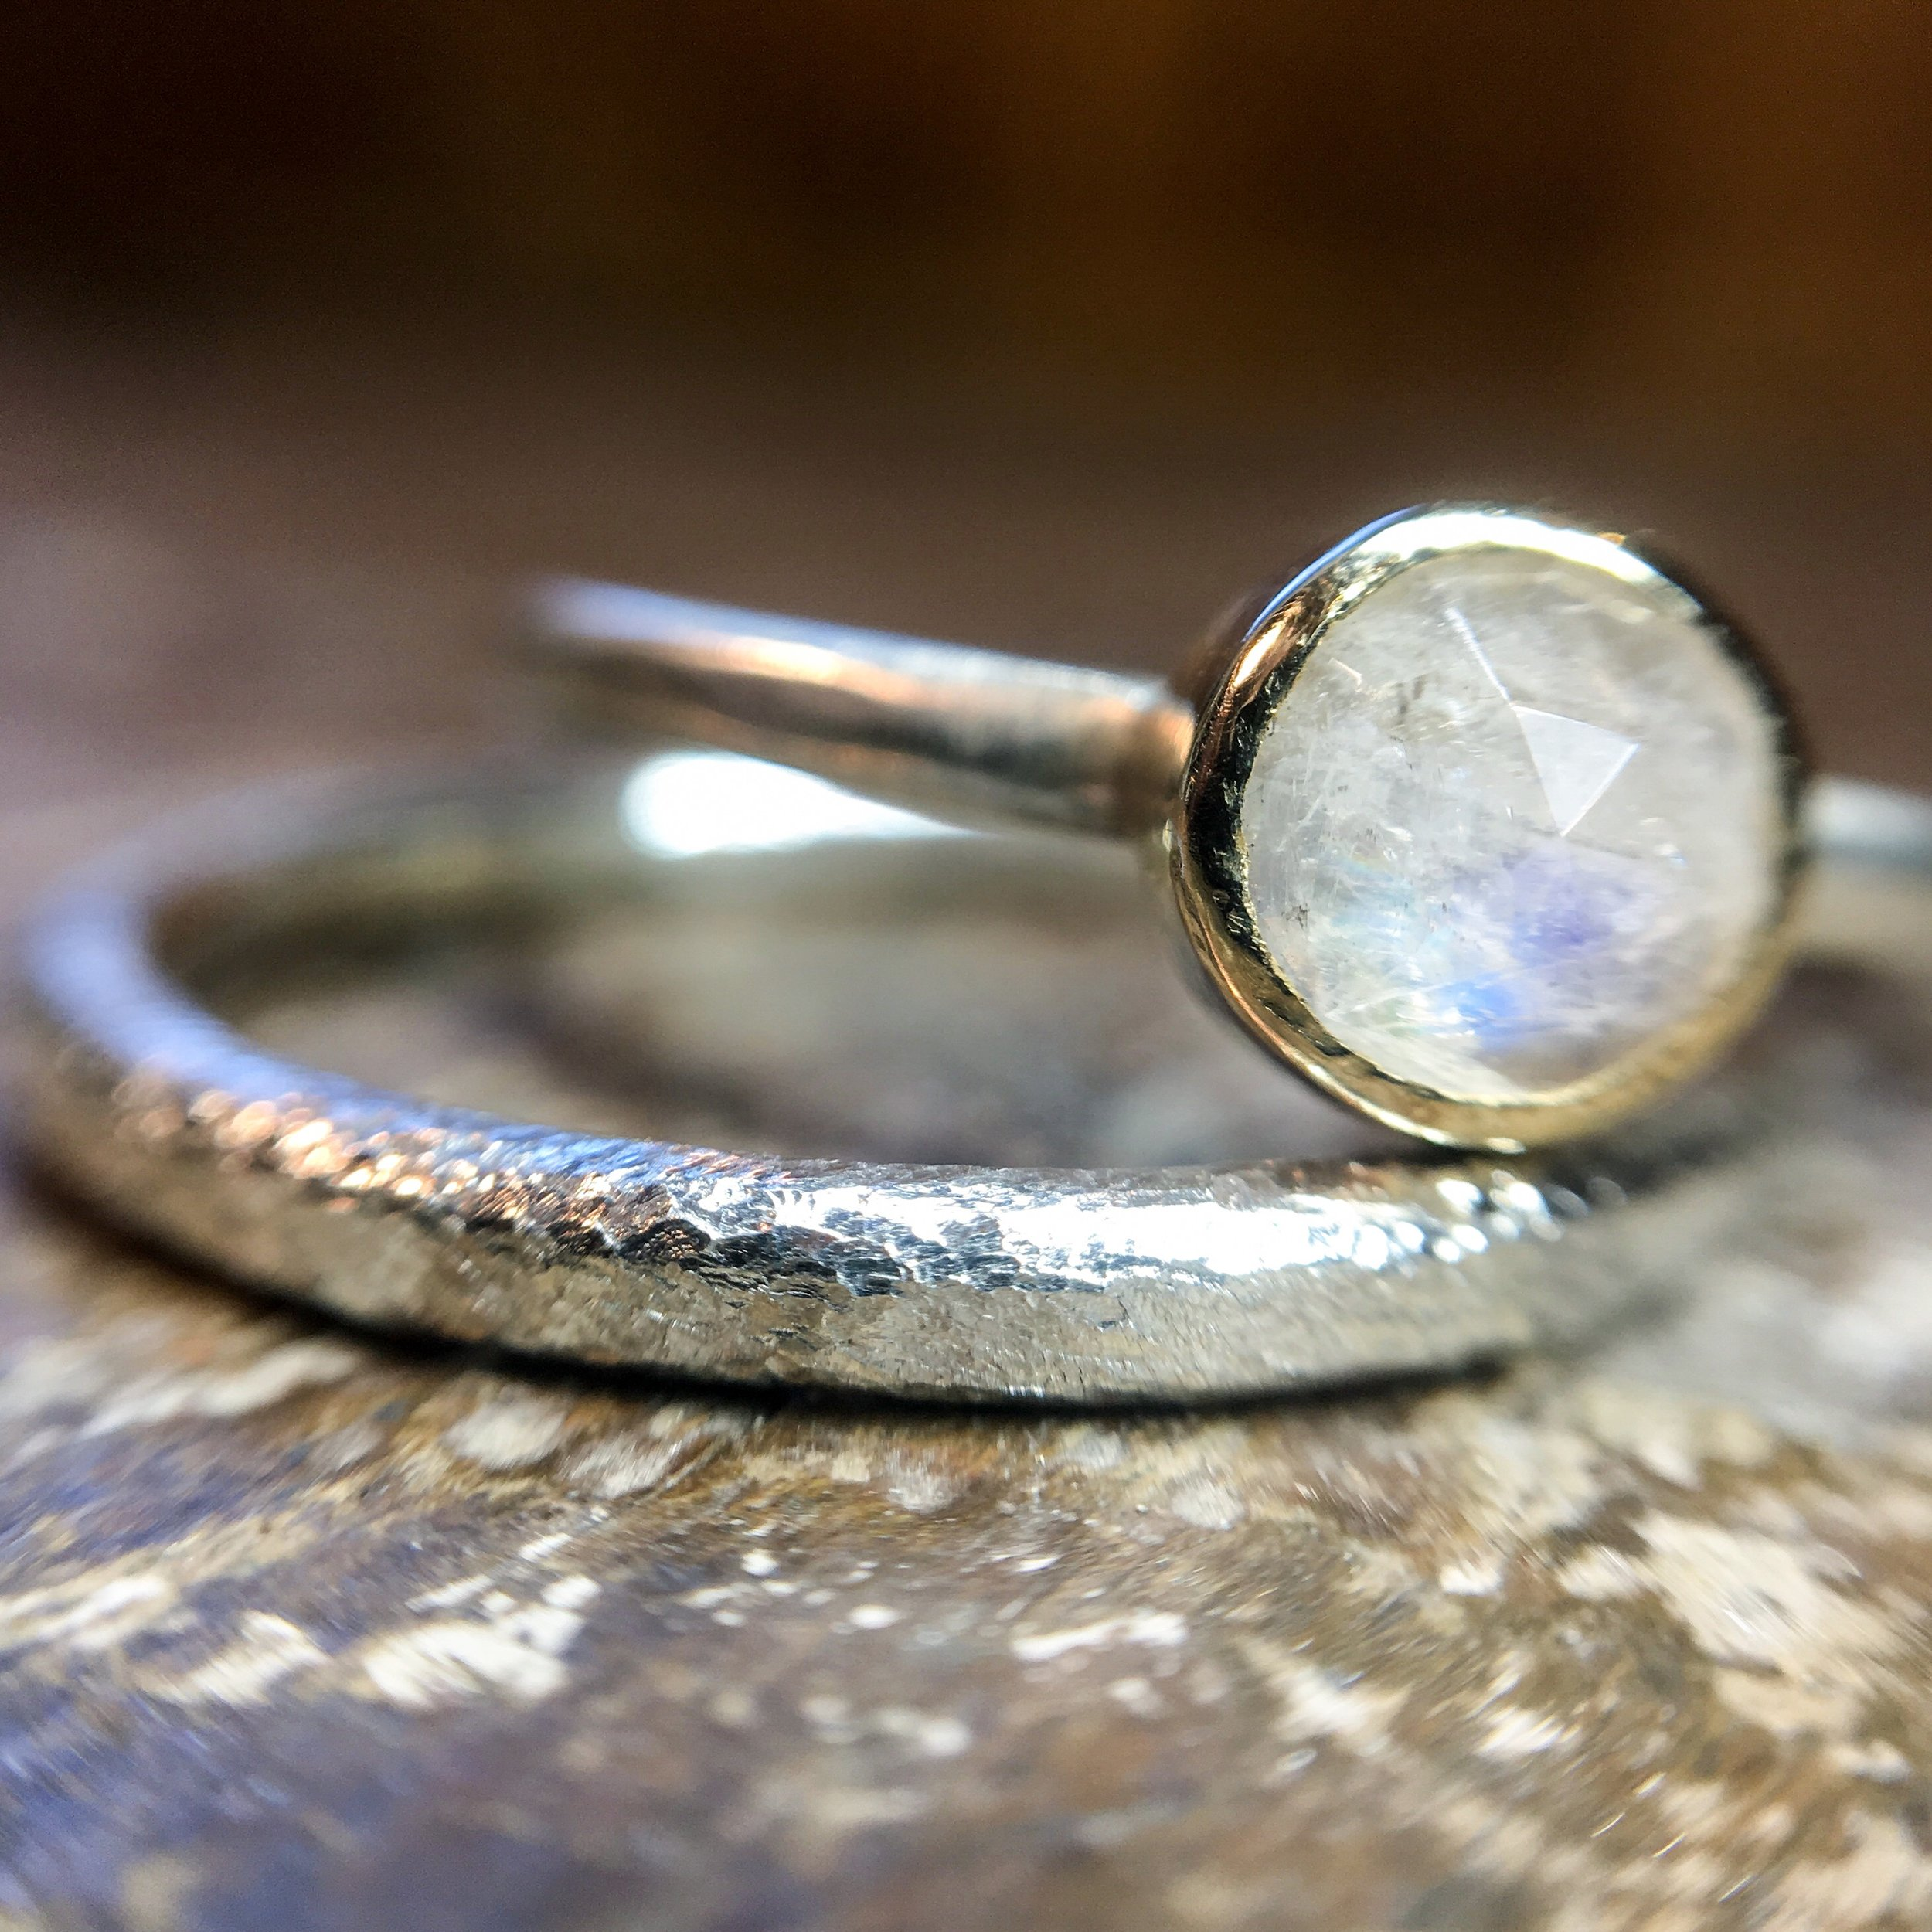 Recycled silver and gold set with moonstone